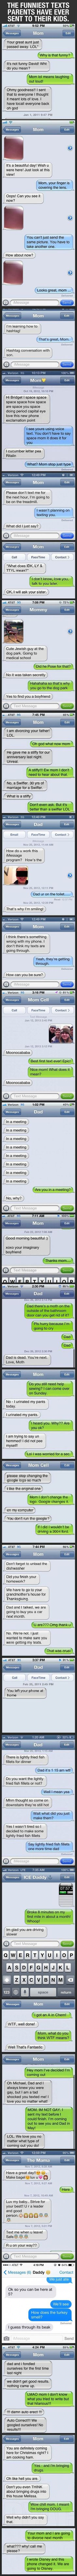 The Funniest Texts Parents Have Ever Sent To Their Kids funny jokes parents text lol funny quote funny quotes funny sayings joke parenting humor funny pictures fails funny images